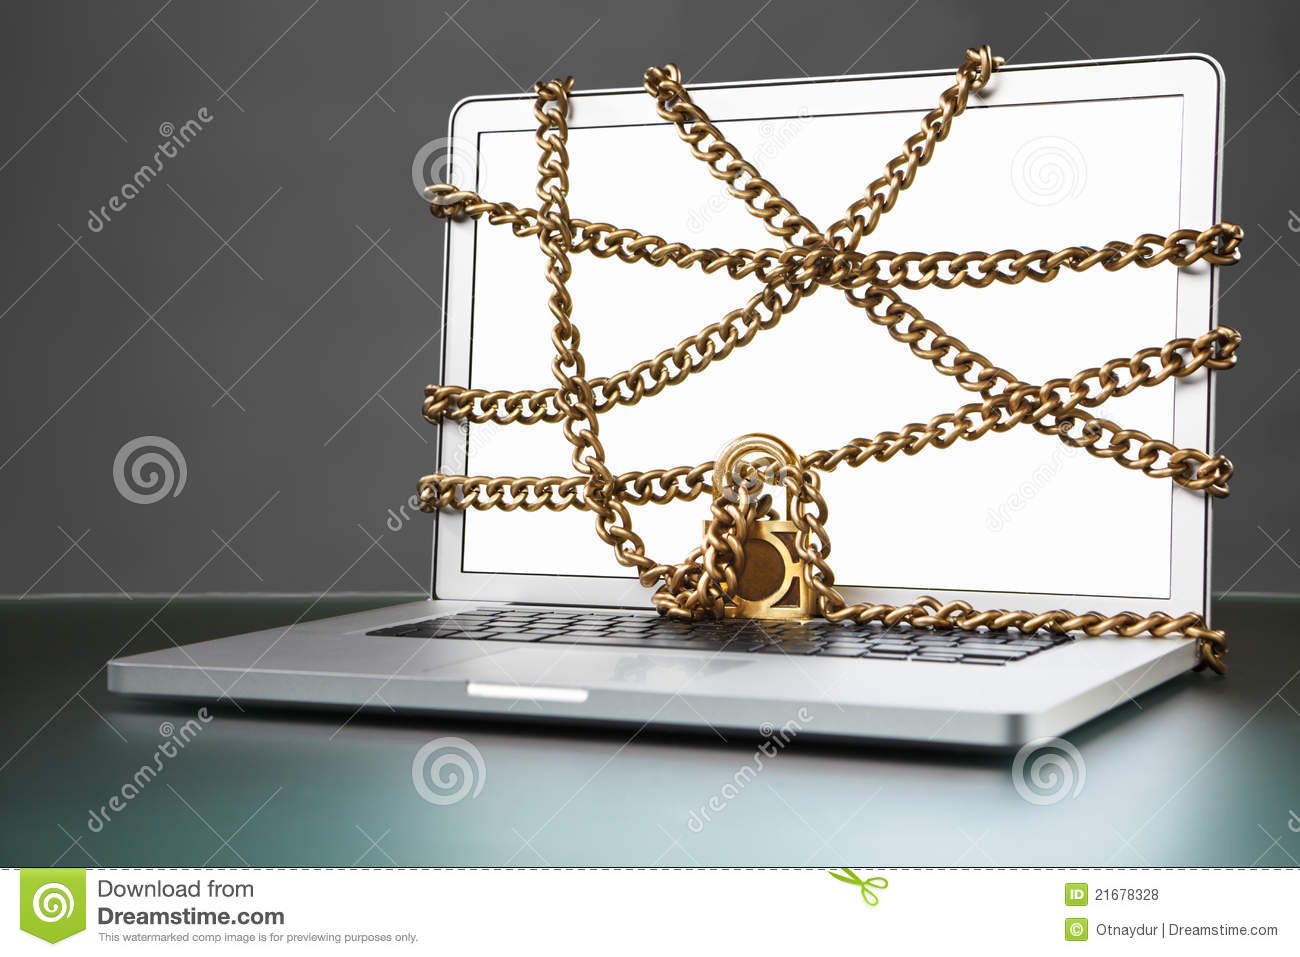 Open laptop with chain and lock royalty free stock photos image 21678328 - How to open chain lock ...